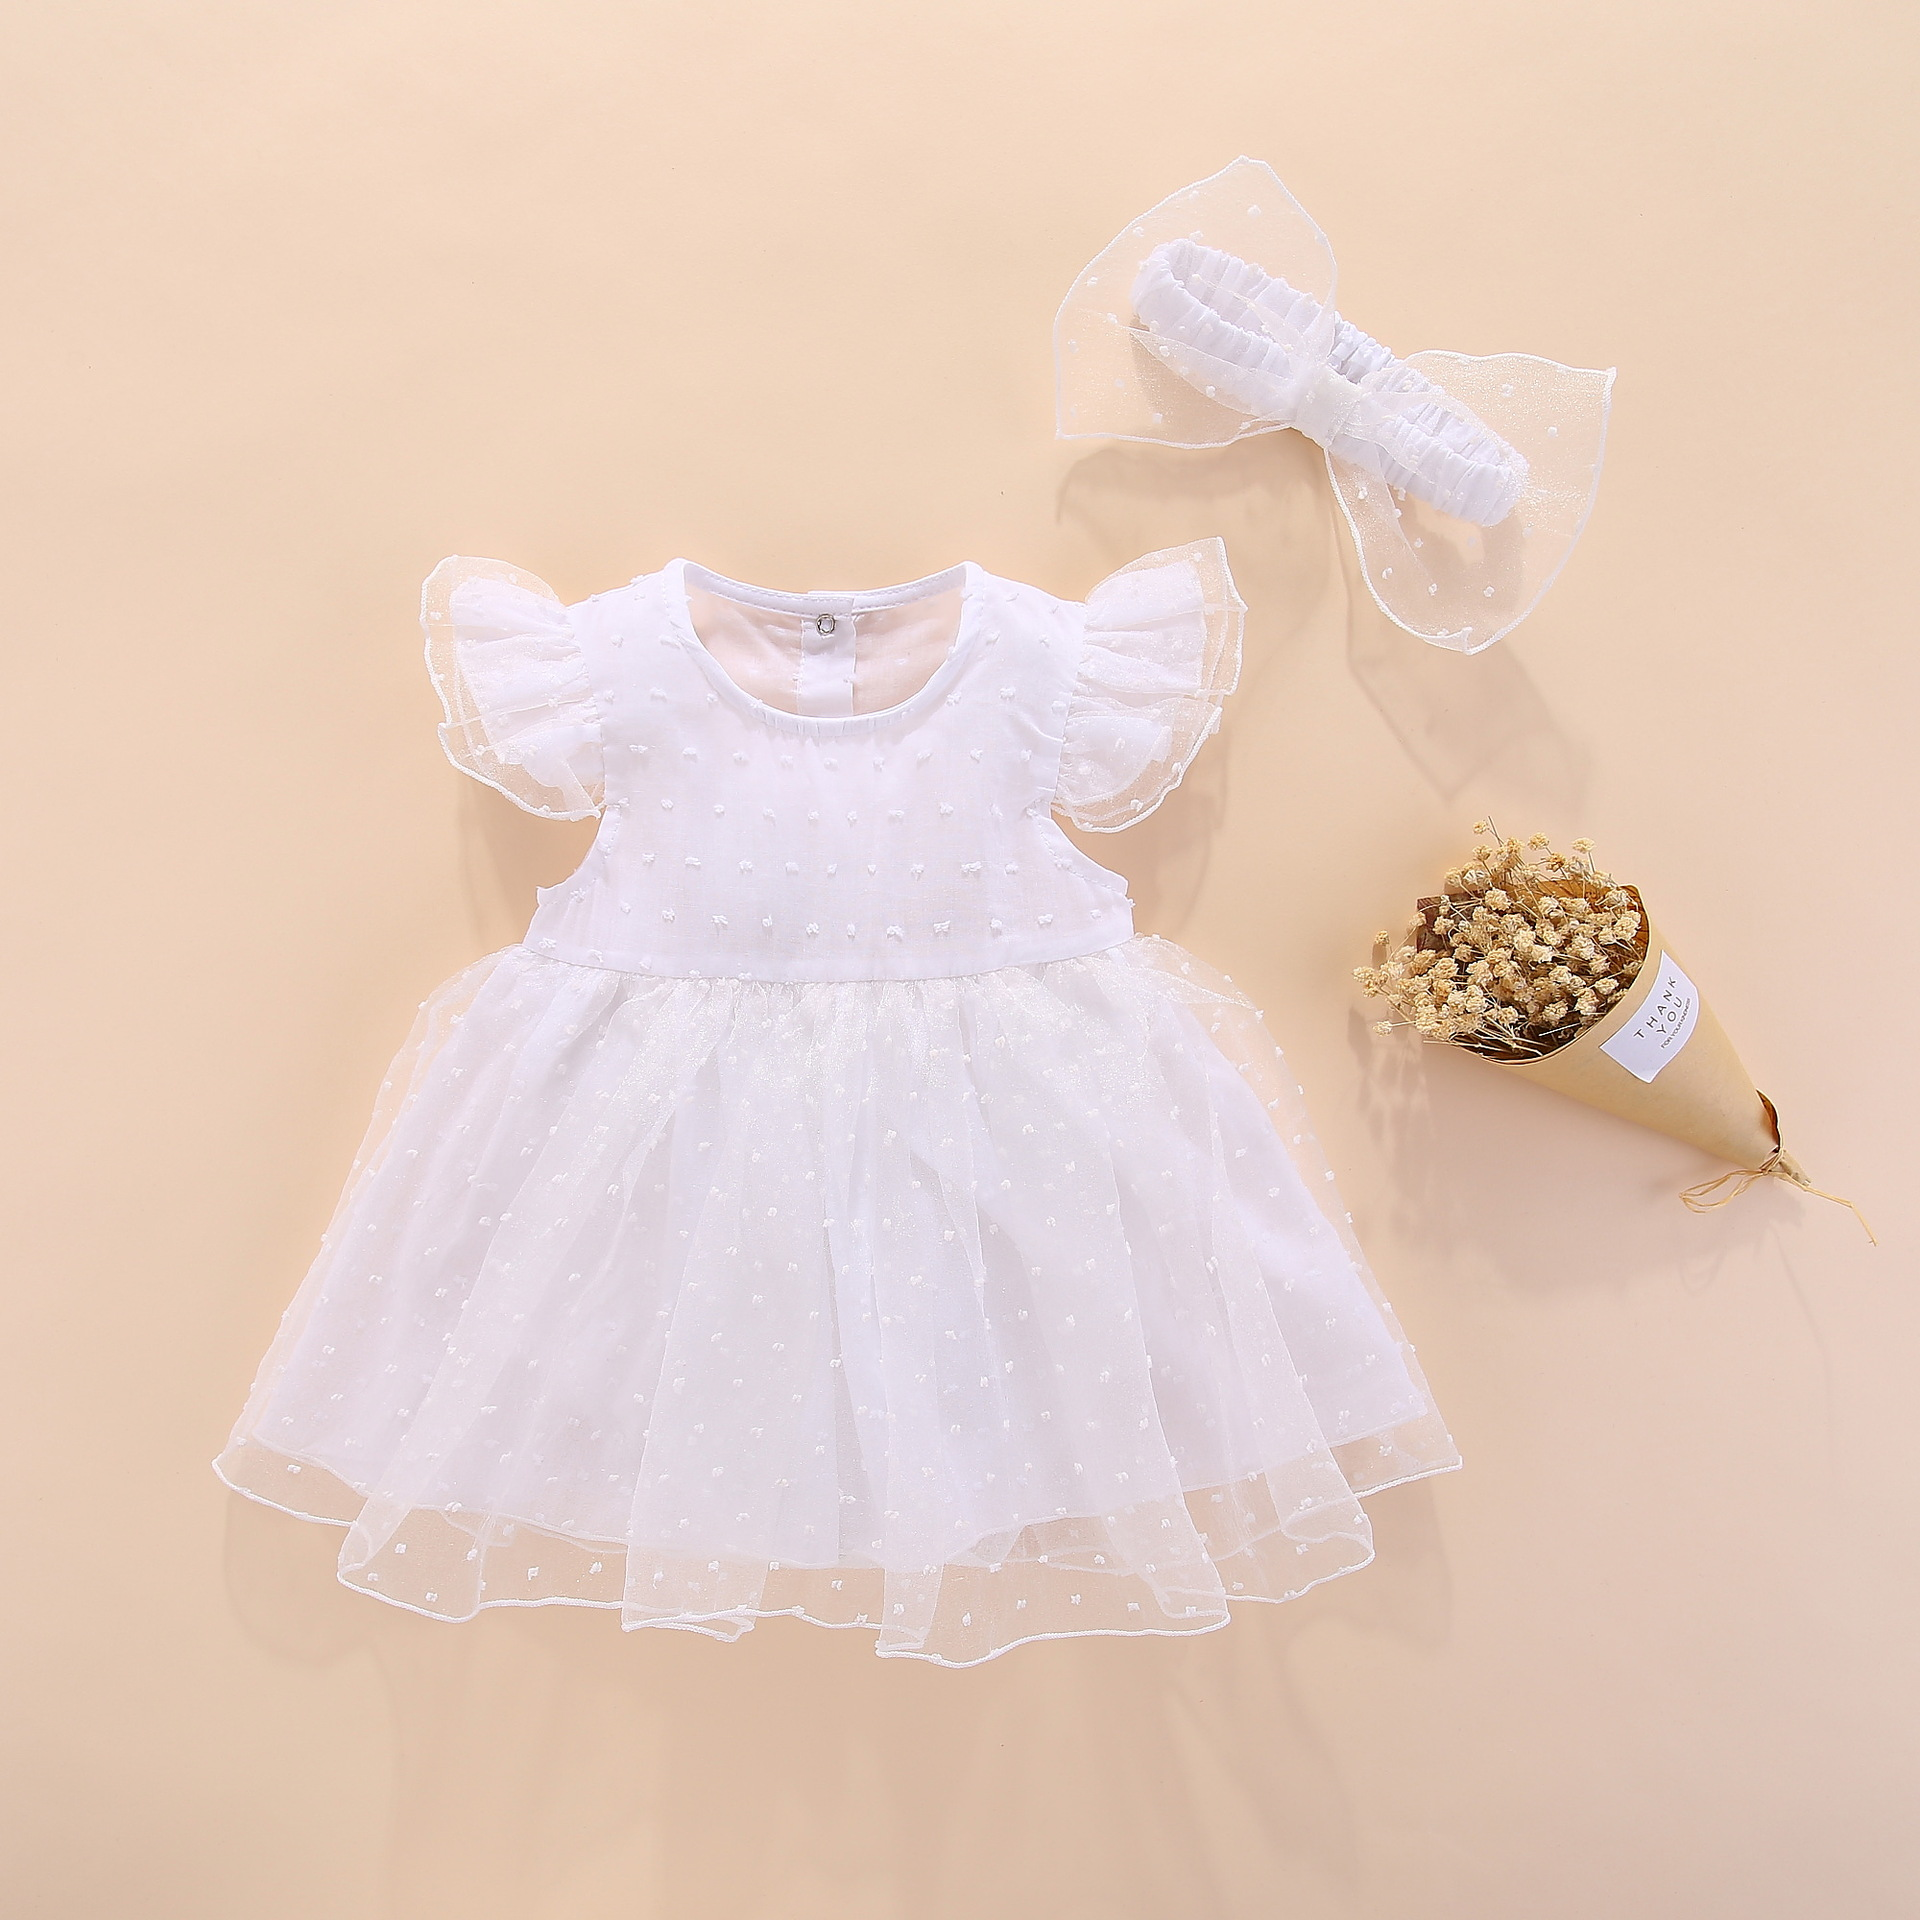 newborn baby dress lace set 3 months baby clothing my first birthday 6 baby clothes girl summer princess tutu romper bodysuit bracelet